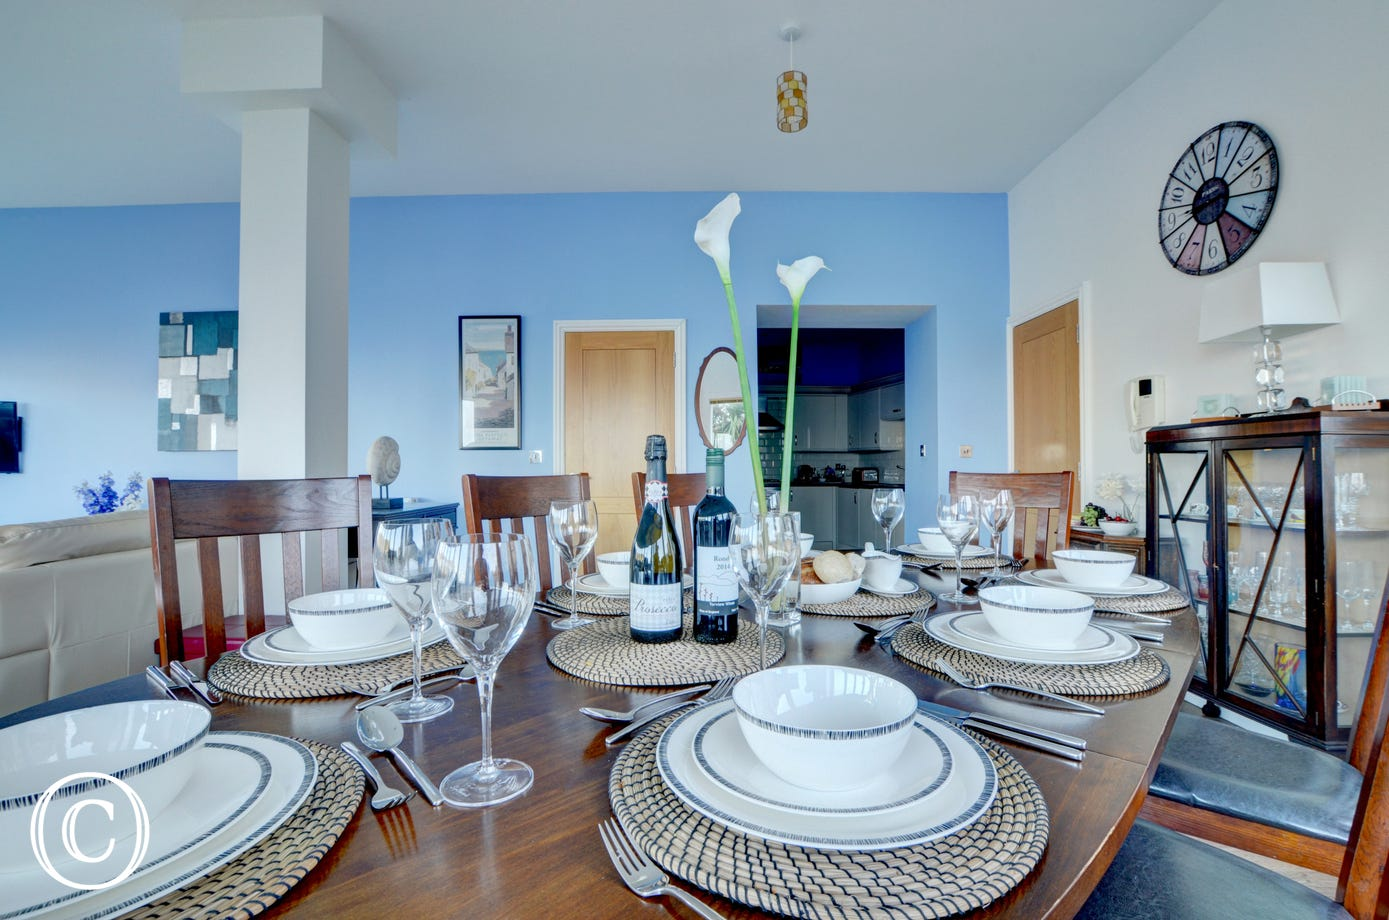 Enjoy fine dining around the large dining table which comfortably seats 8 people